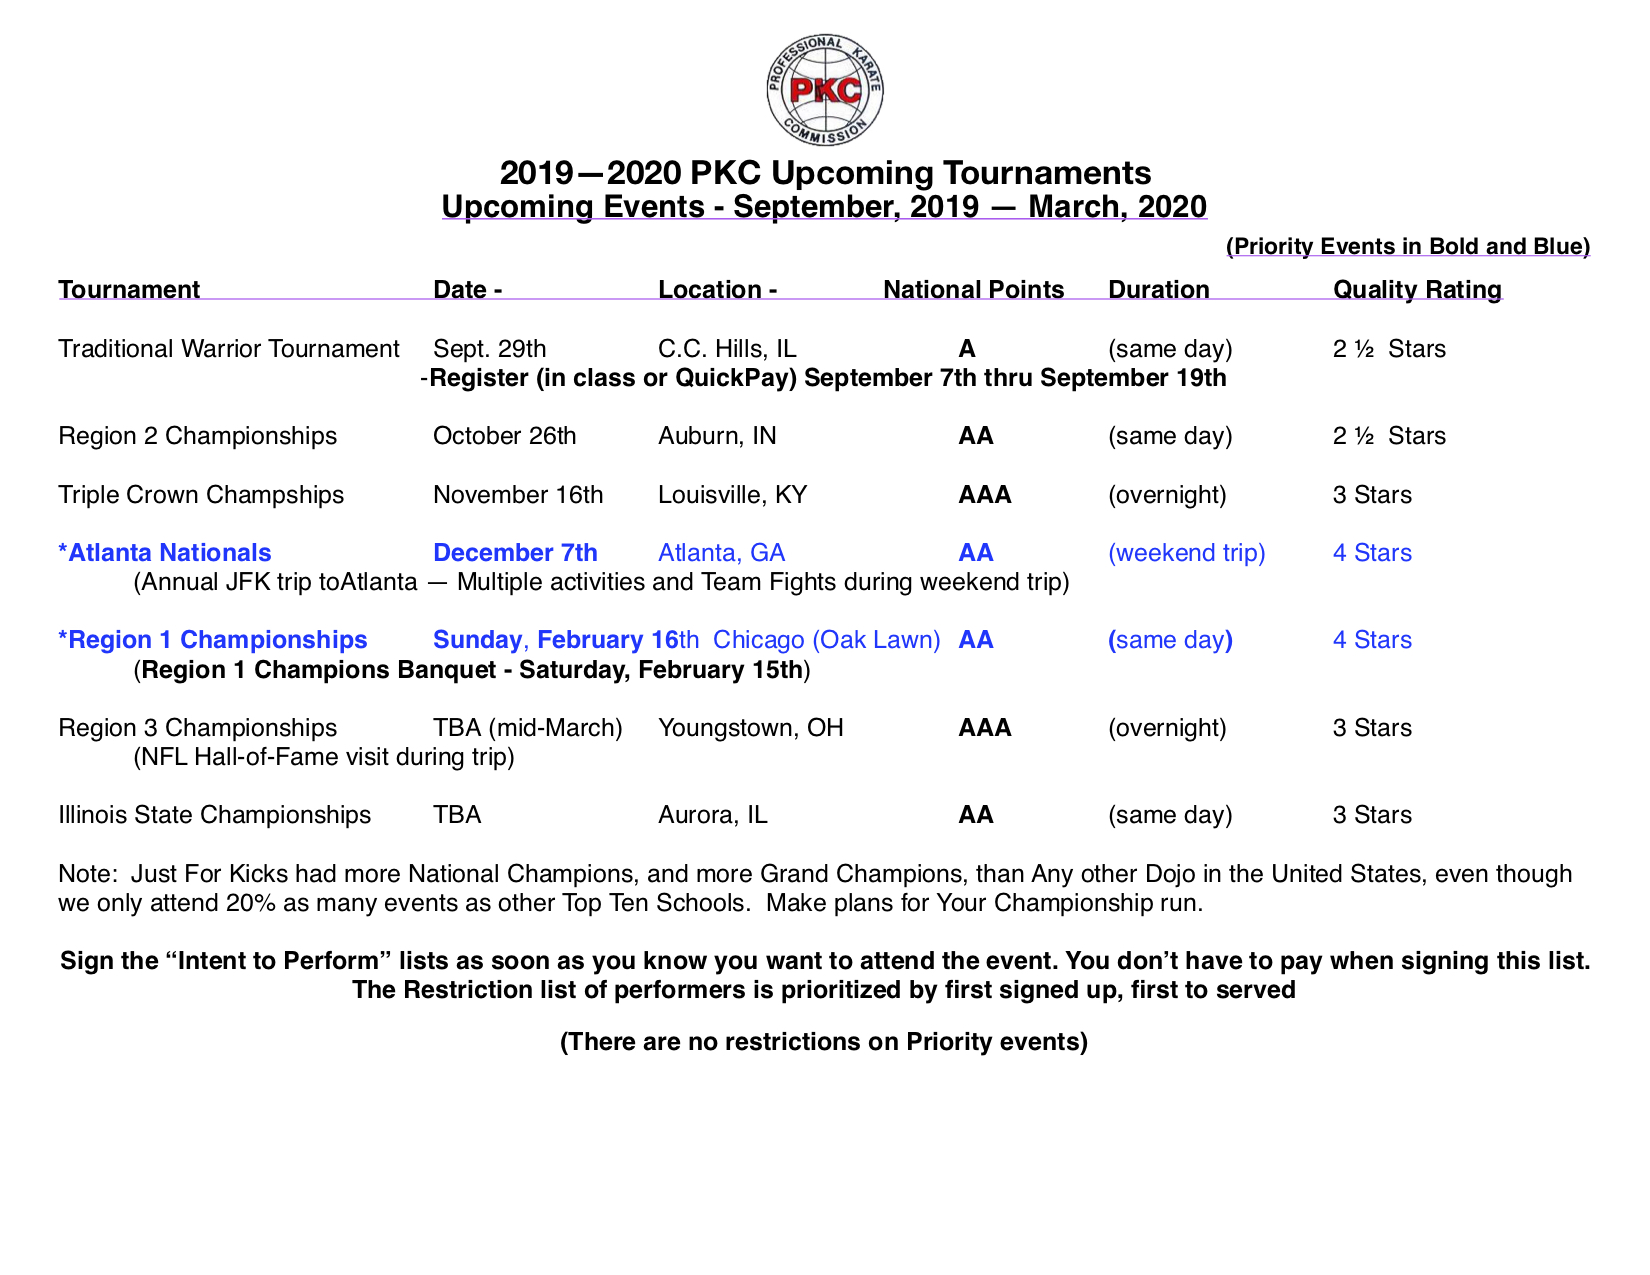 2019 - 2020 Tournament Activities